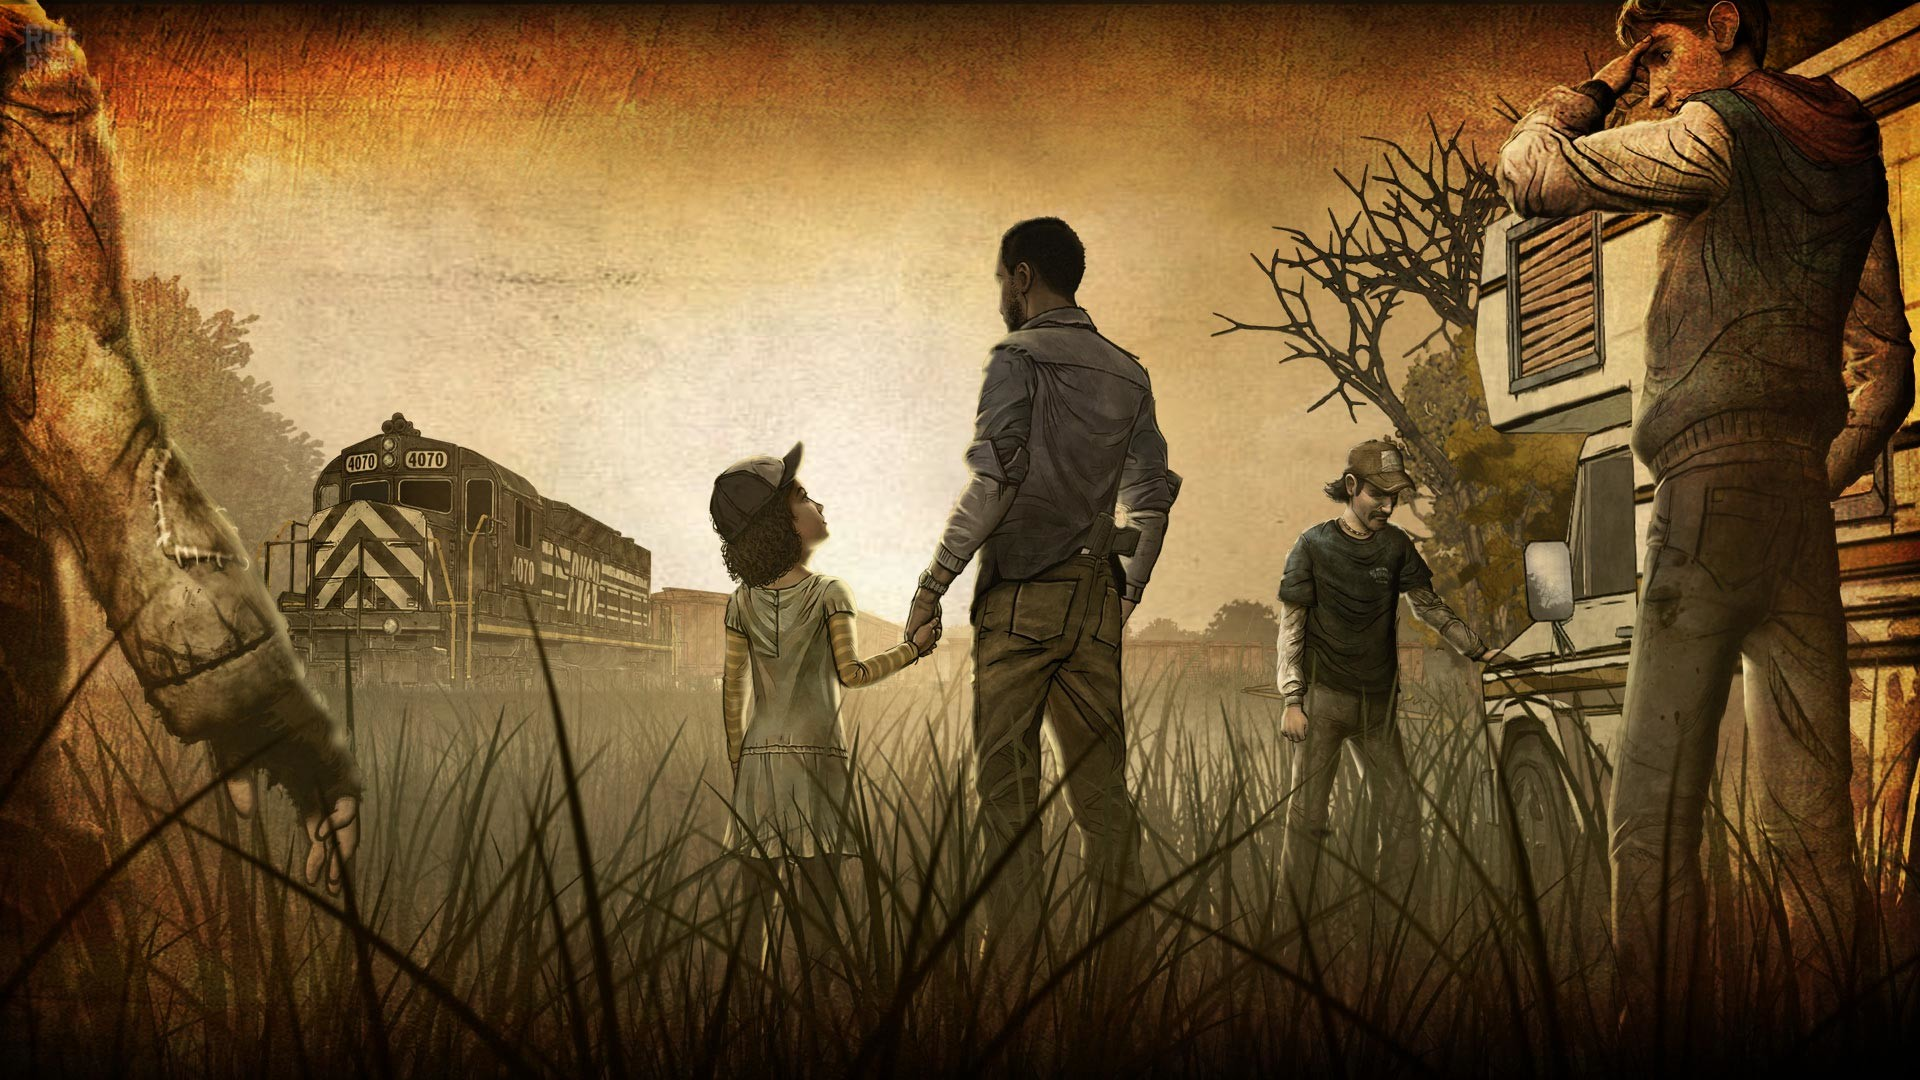 walking dead game wallpaper – happy with game